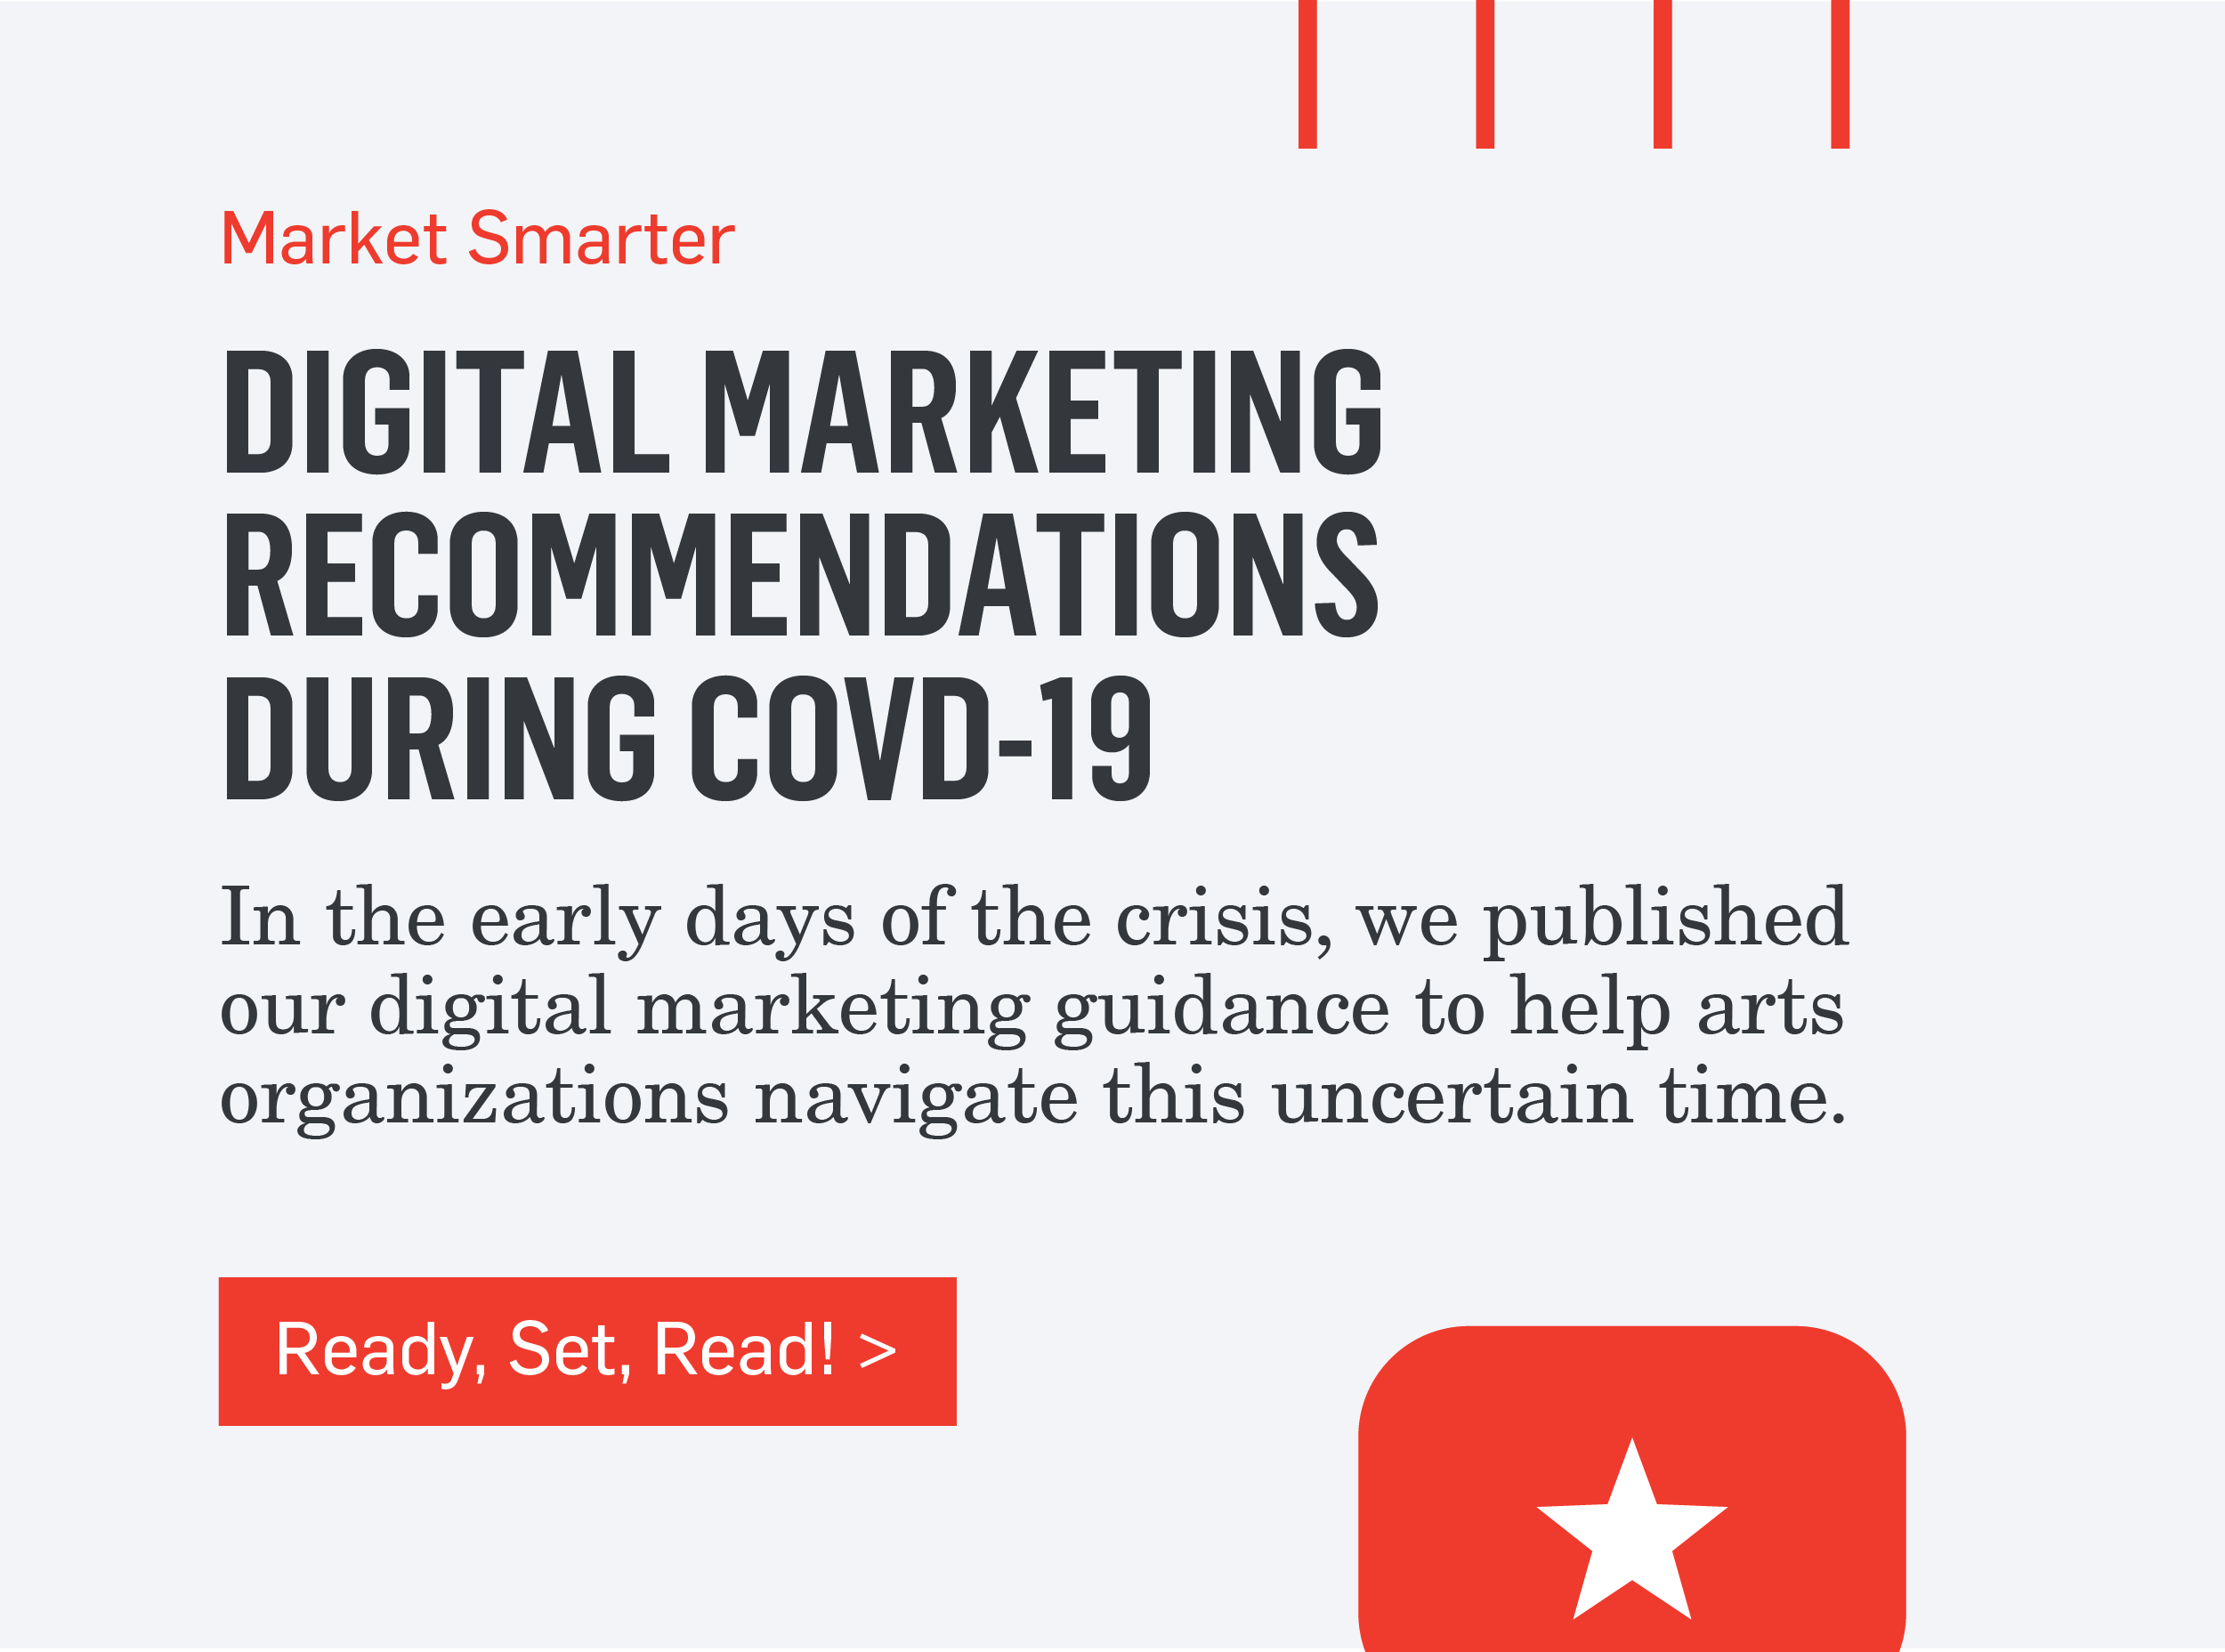 Market Smarter - DIGITAL RECOMMENDATIONS DURING COVID-19 - In the early days of the crisis, we published our digital marketing guidance to help arts organizations navigate this uncertain time. >>>Ready, Set, Read!>>>